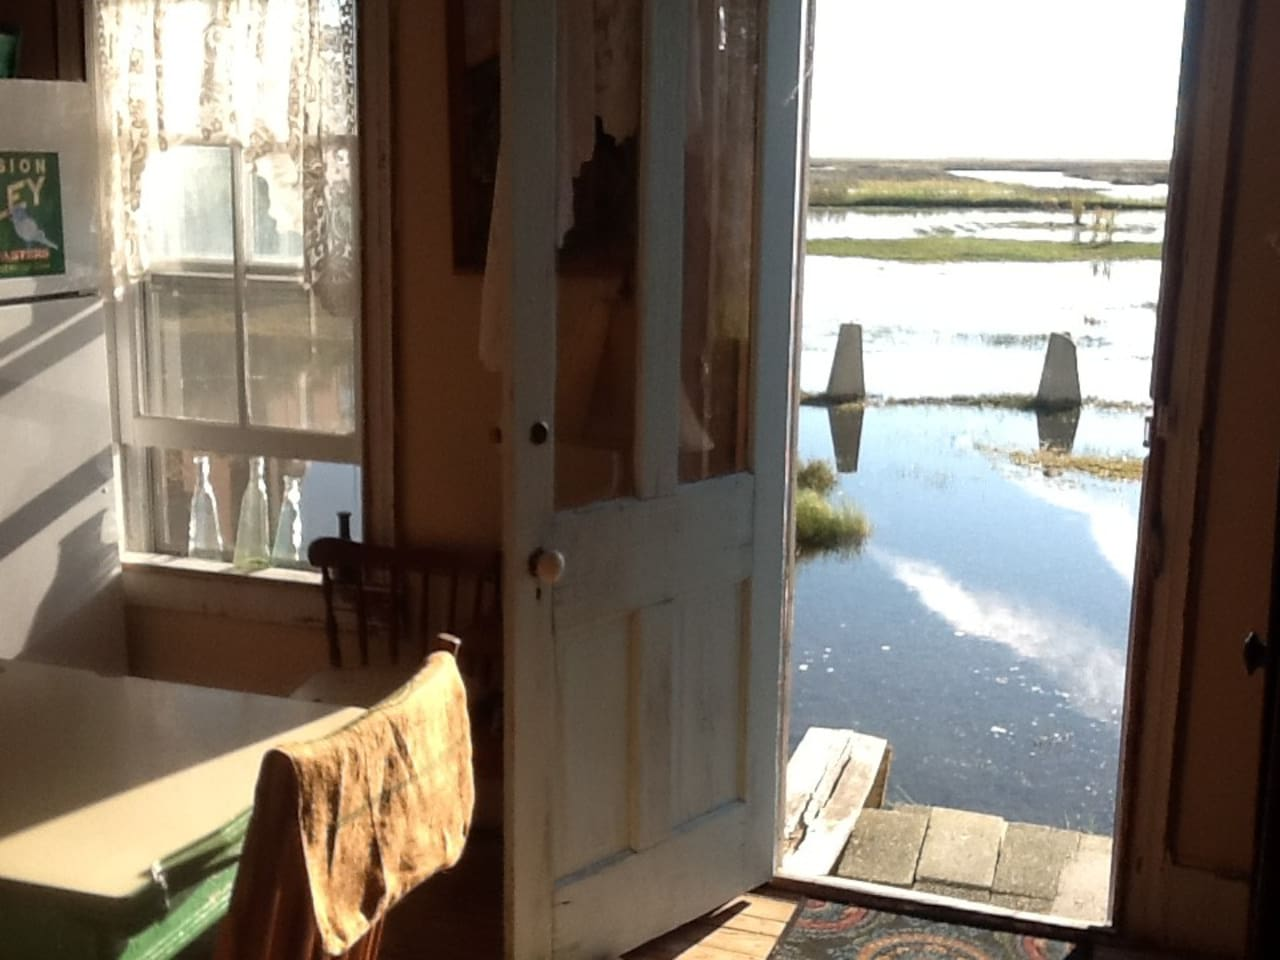 kitchen--high tide! bring your boots!